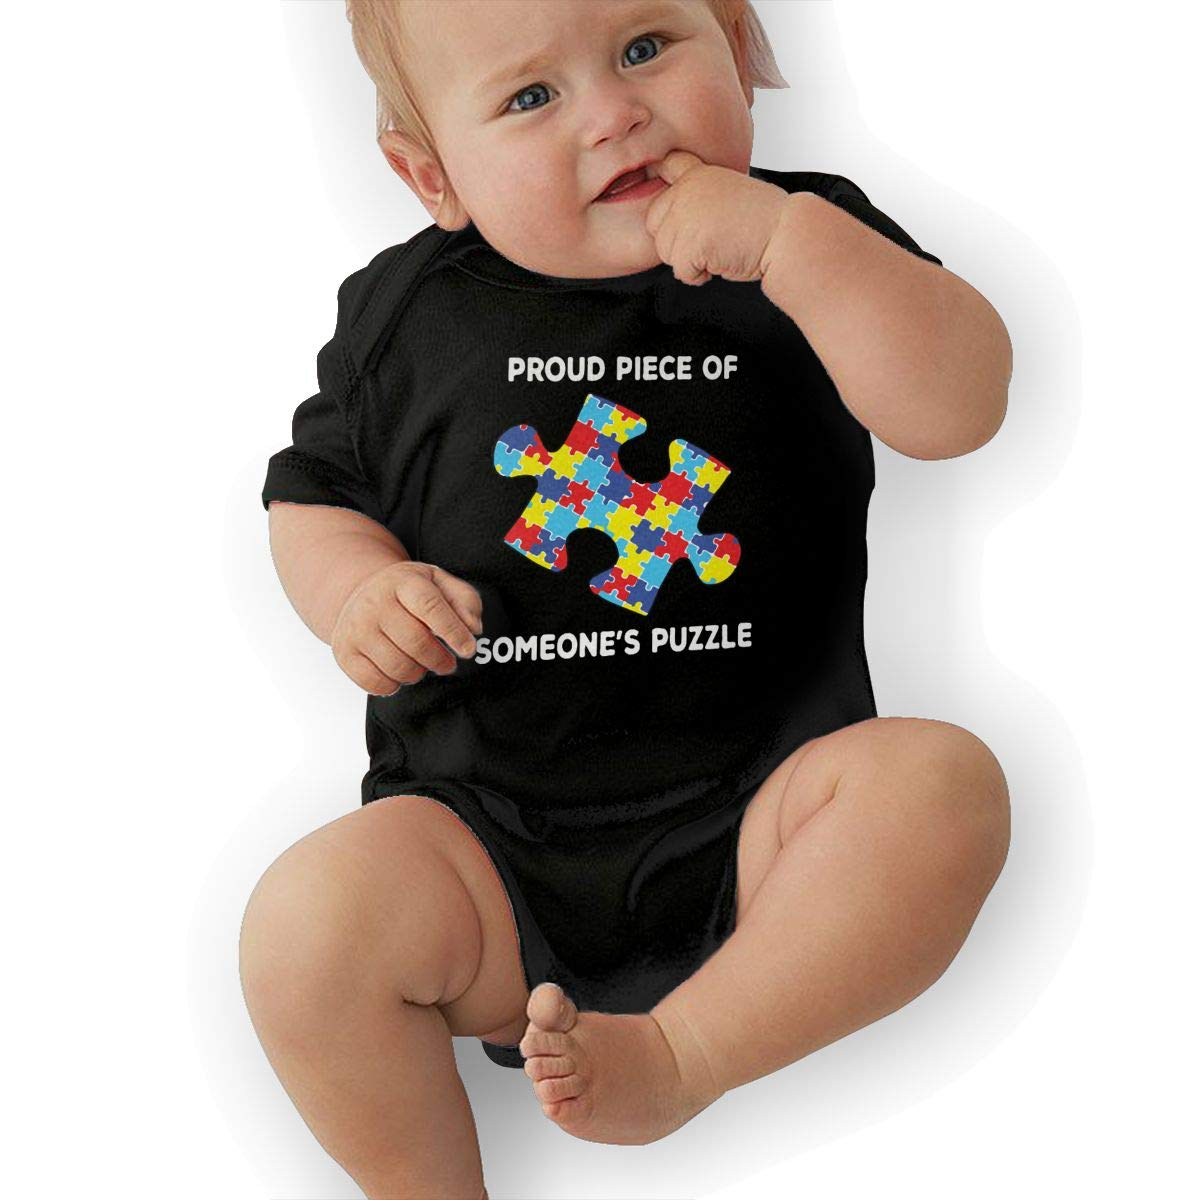 Soft Proud Piece of Someones Puzzle Autism Awareness-1 Onesies U88oi-8 Short Sleeve Cotton Rompers for Baby Girls Boys